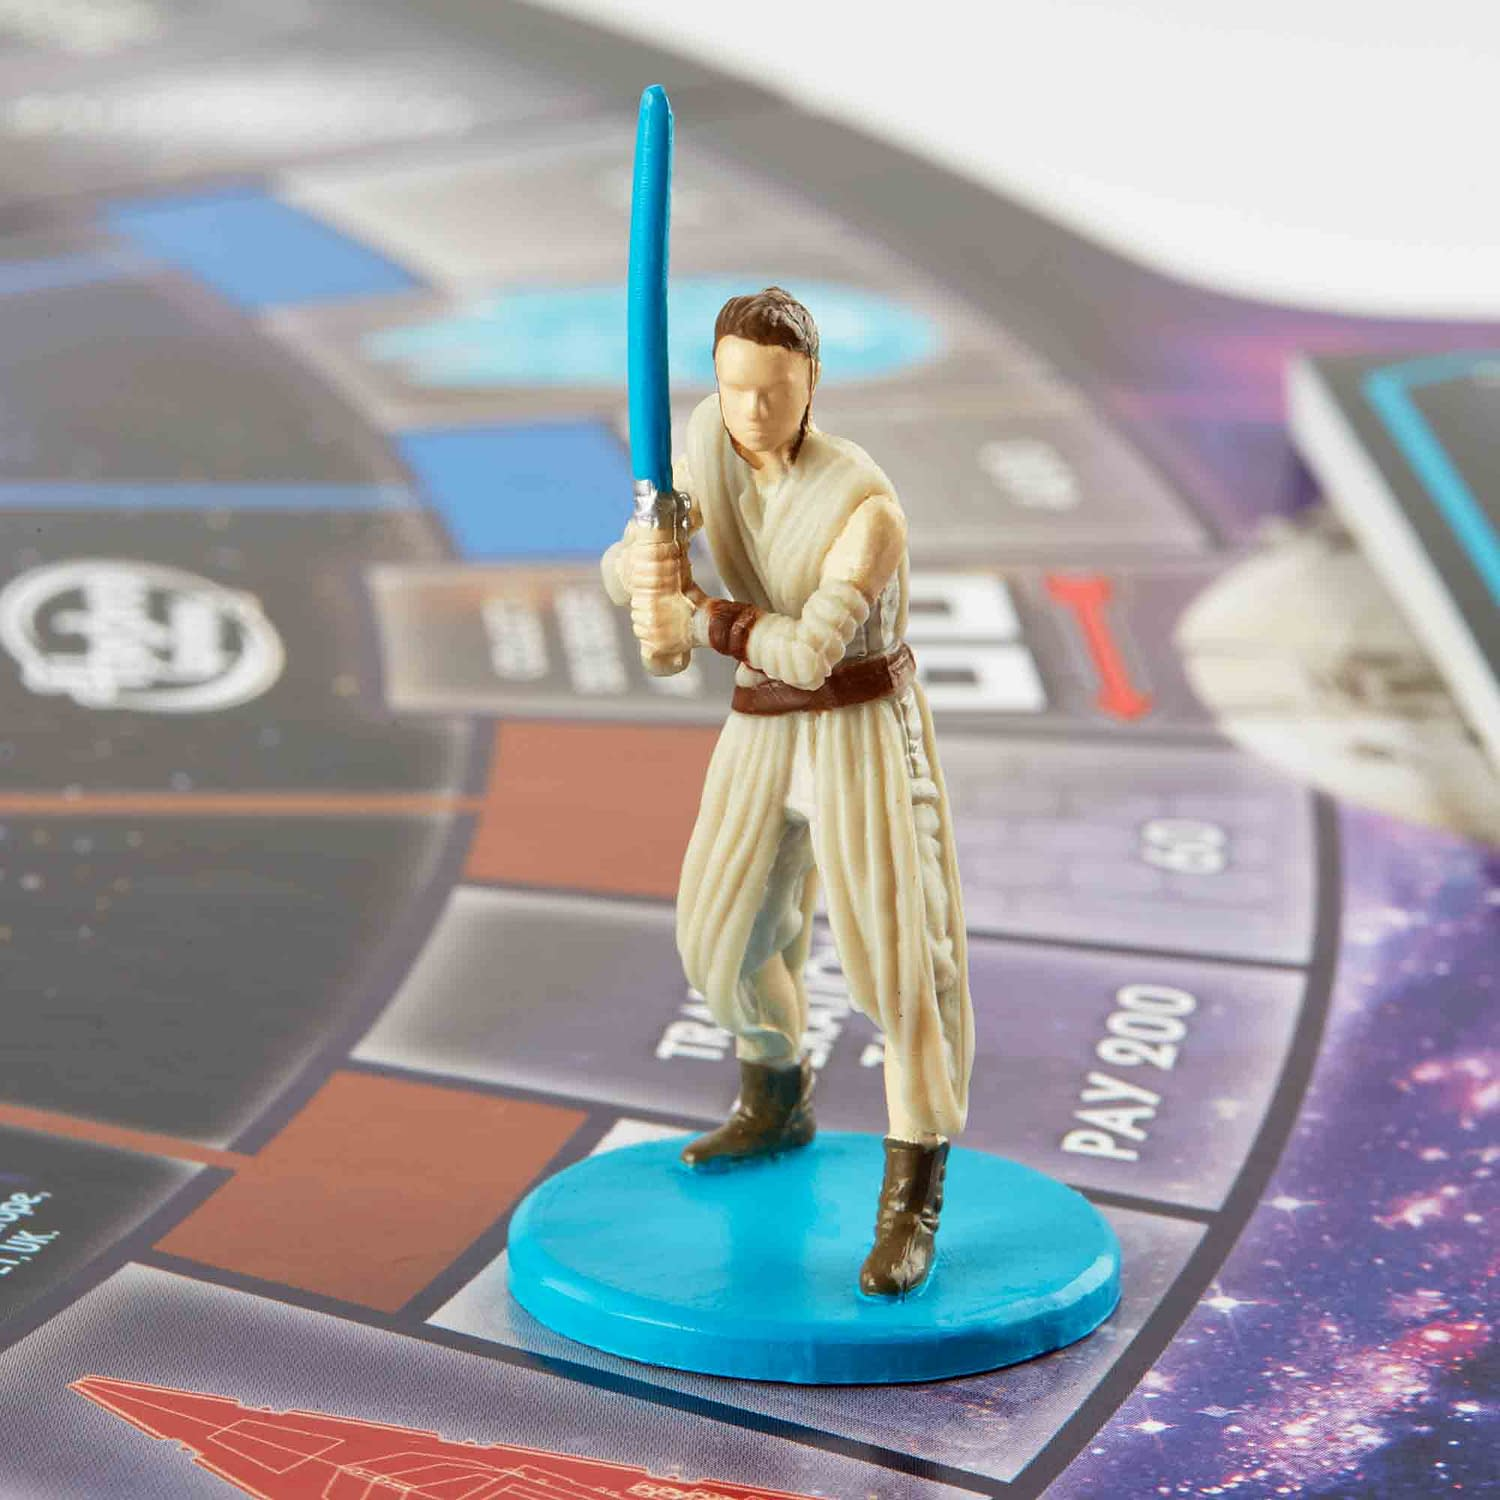 You Can Finally Buy 'Star Wars' Monopoly With Rey – If You Special Order It